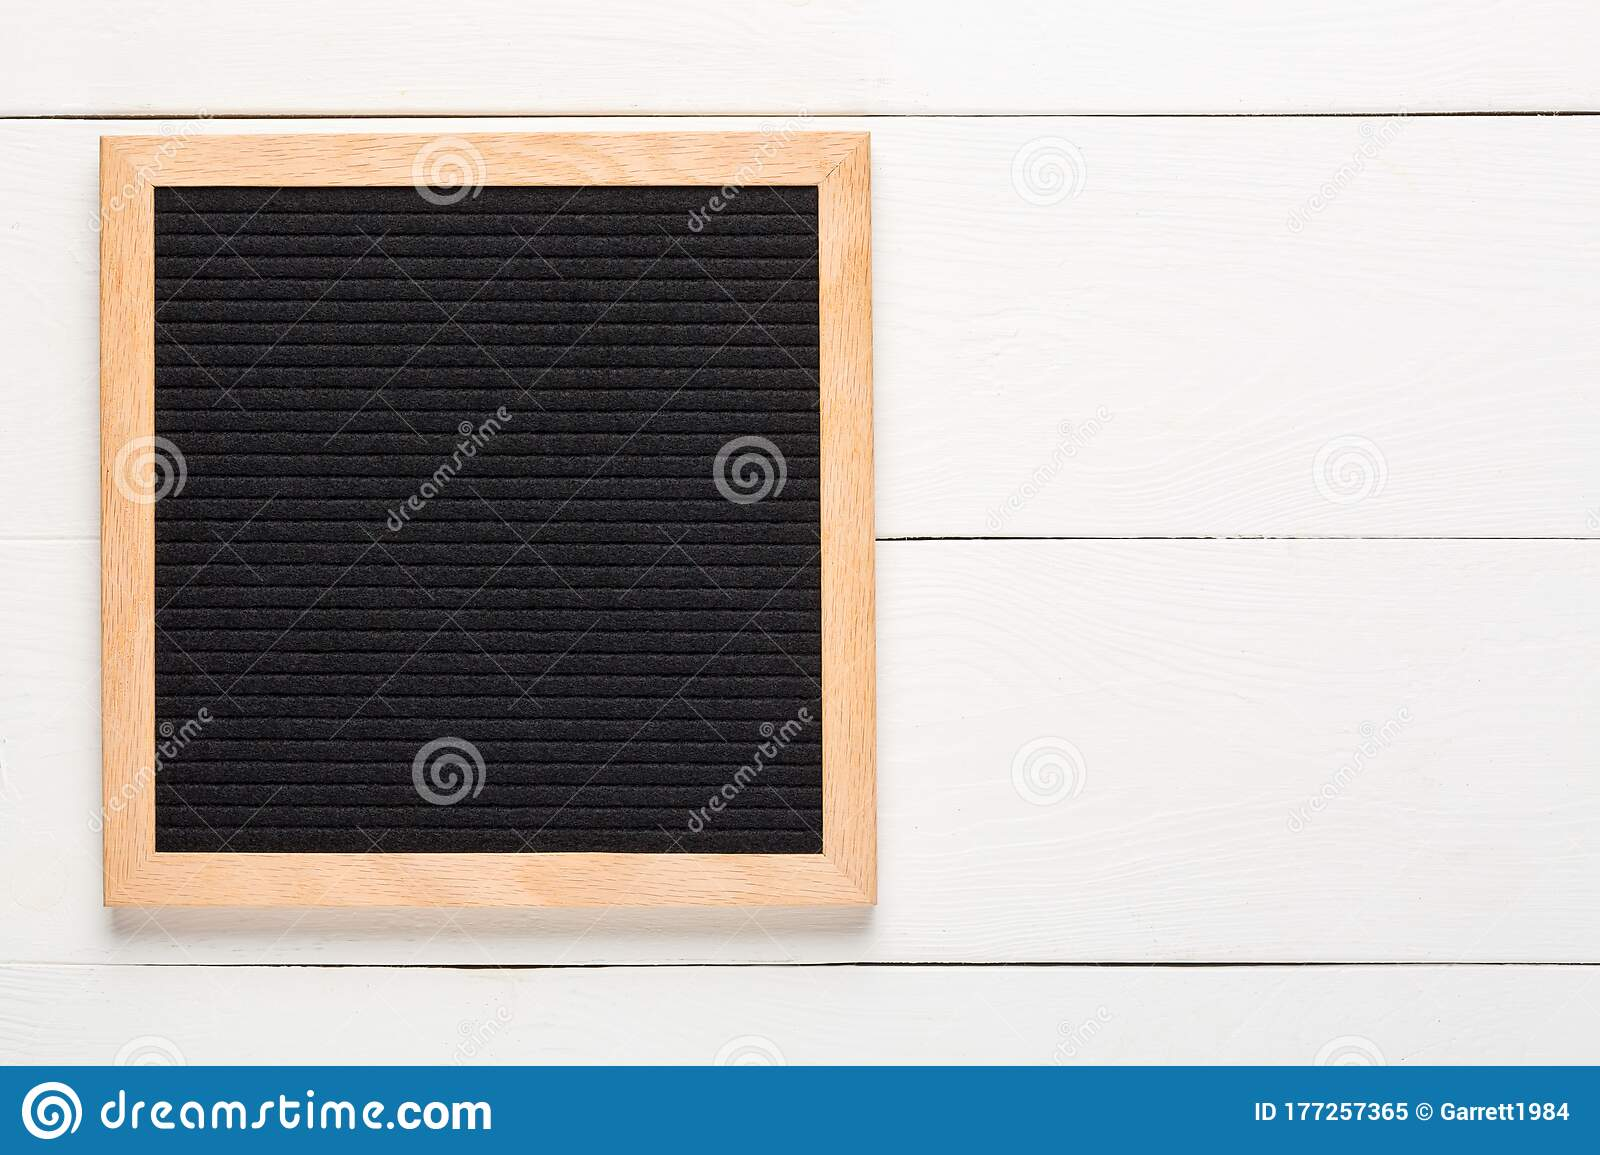 letter board mockup photo Birthday letterboard  sign stock photo staged JPG stock photography New years sign DIY styled